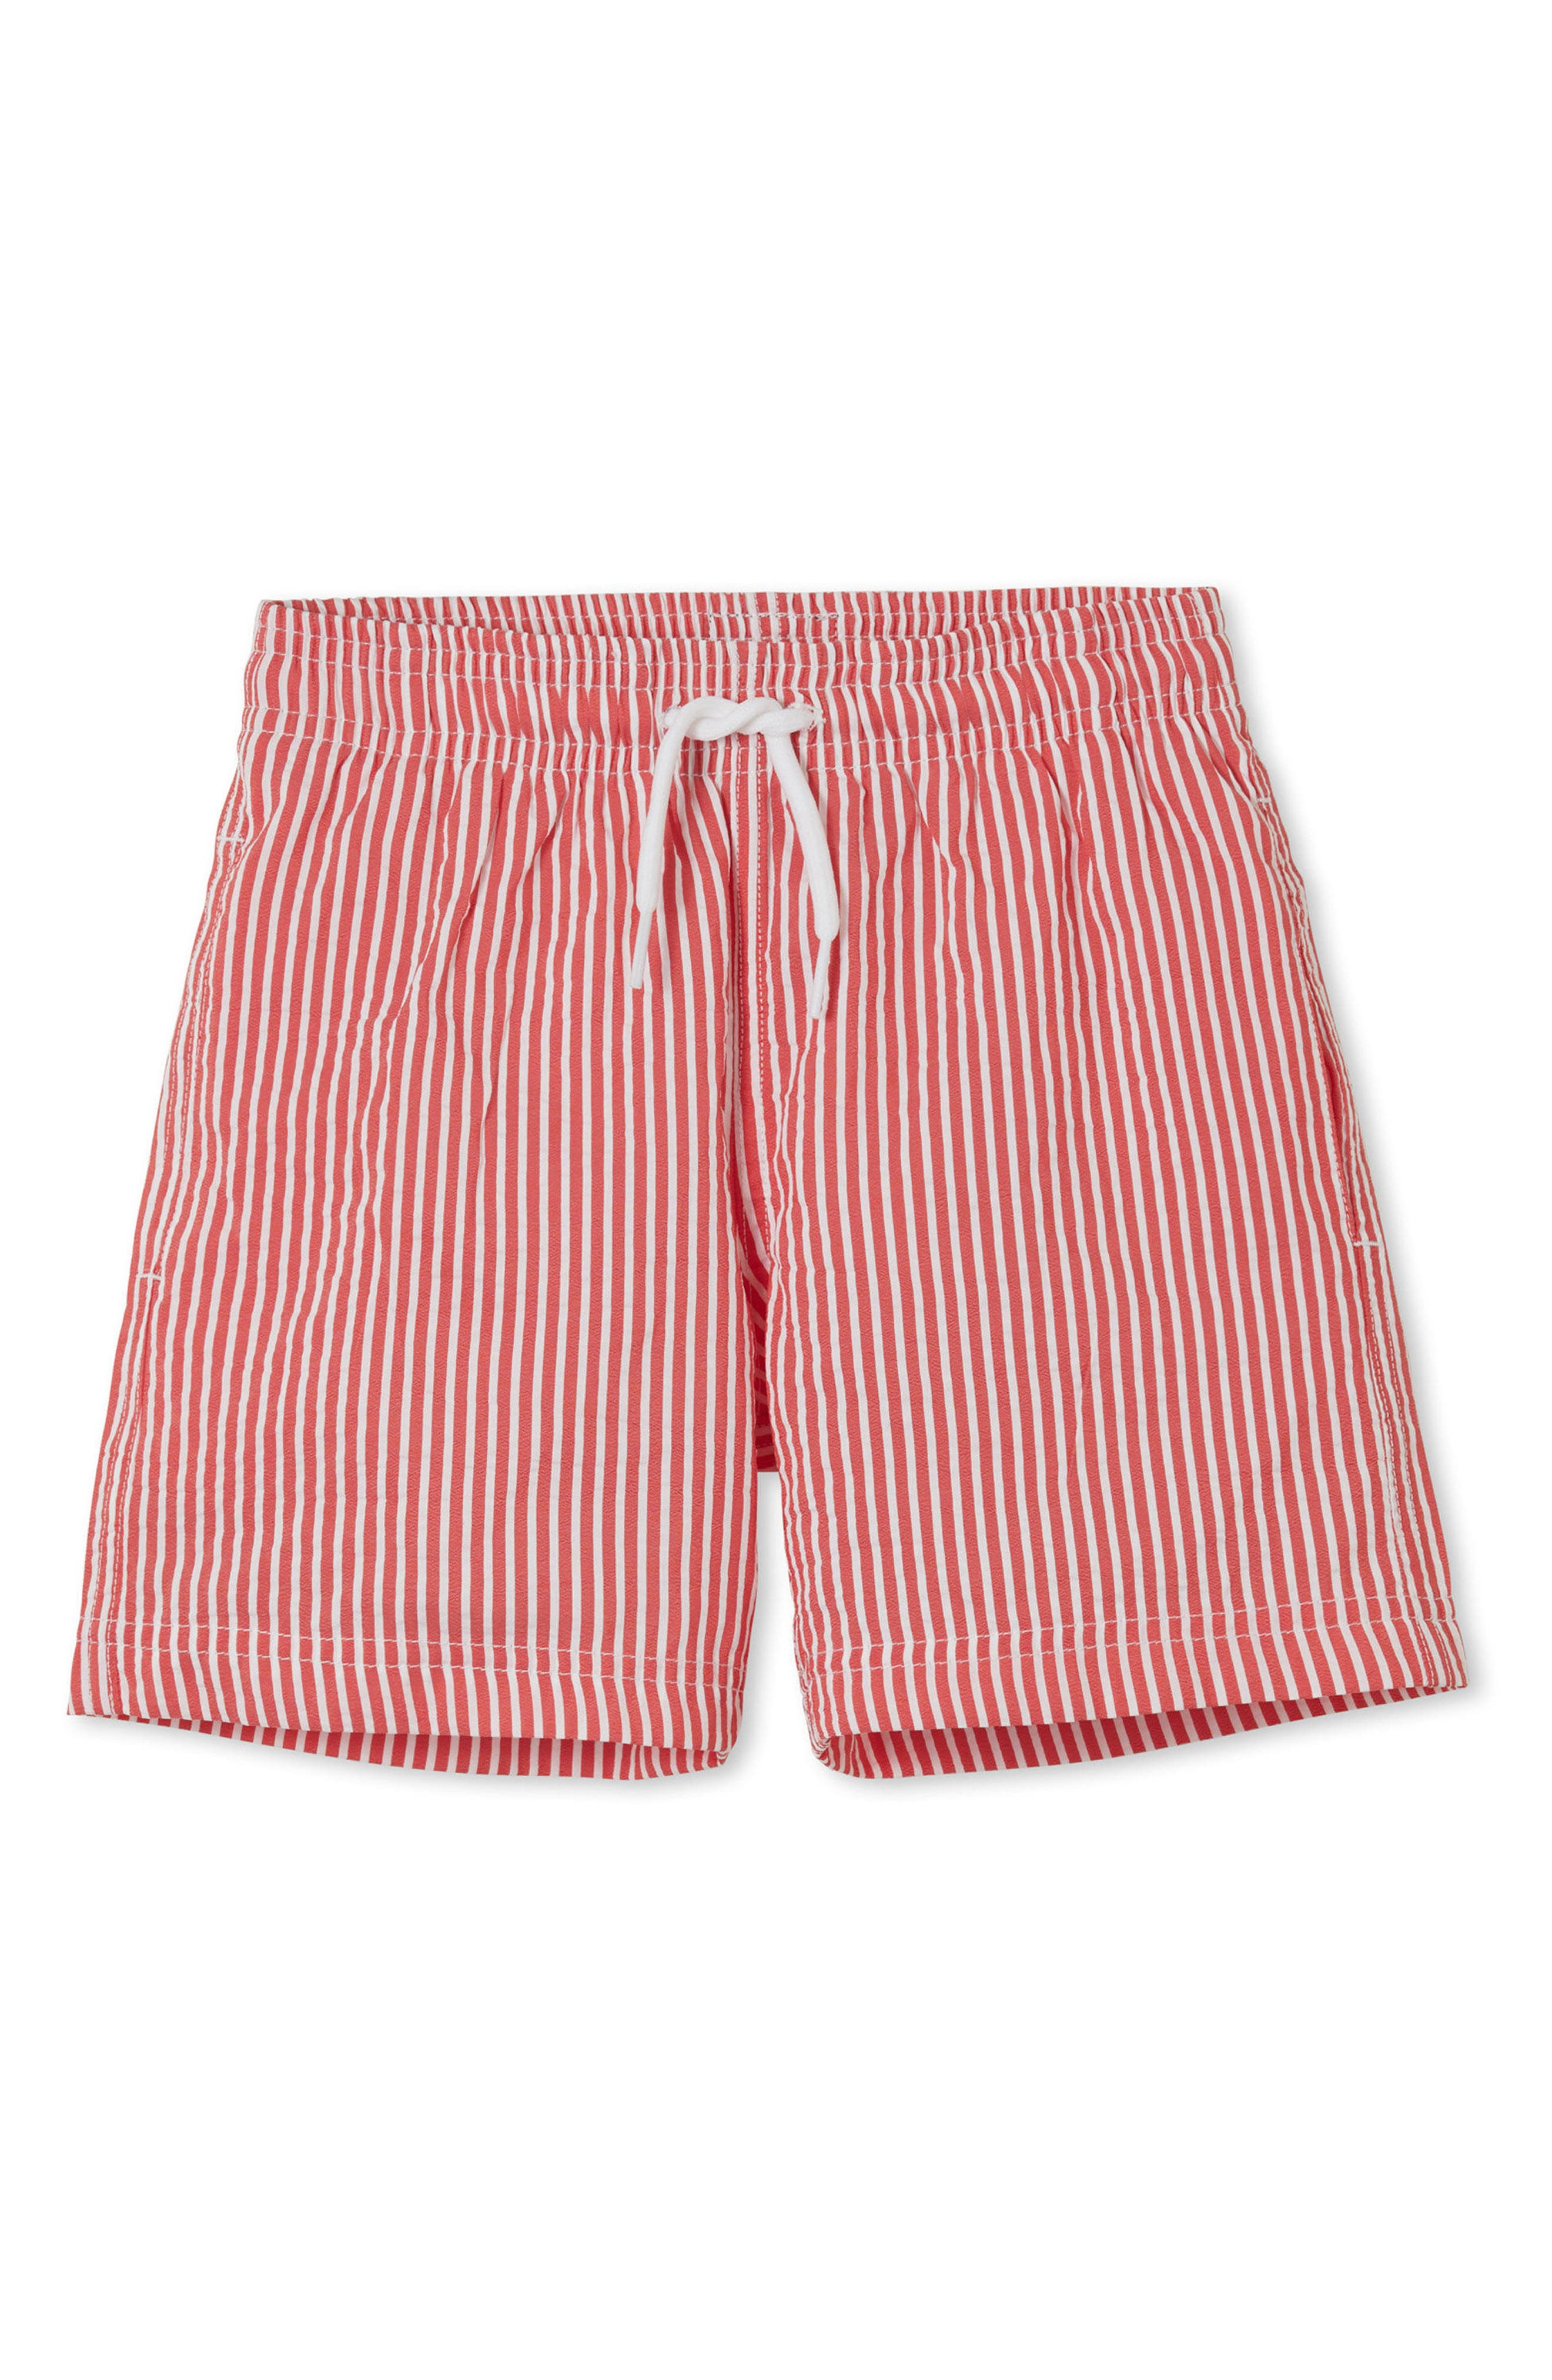 Red Stripe Swim Trunks,                         Main,                         color, 600